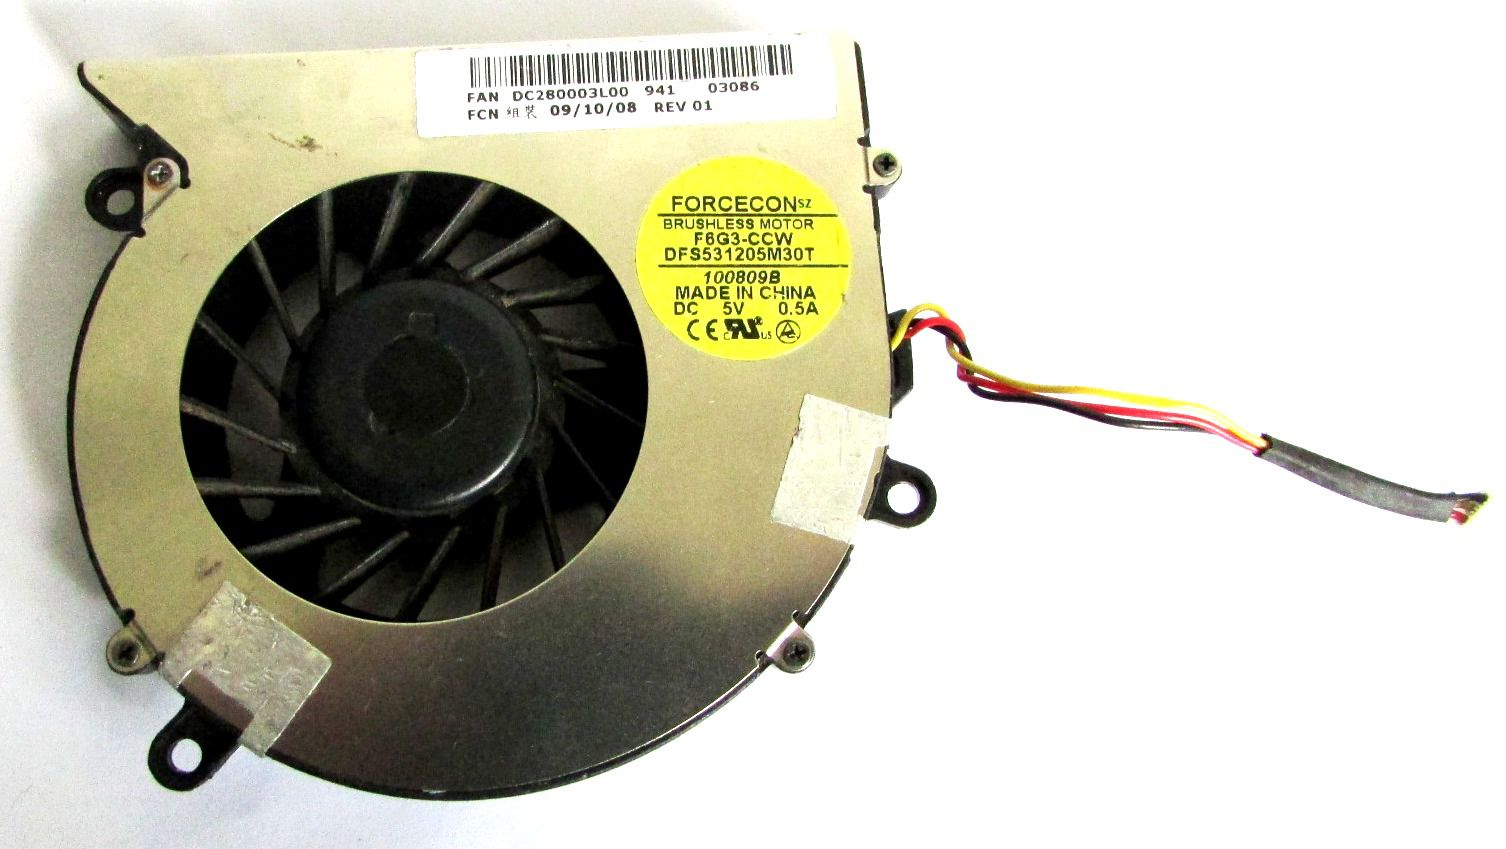 Cooler Notebook Acer 5220 5310 5315 Dc280003l00 F6g3ccw (semi novo)